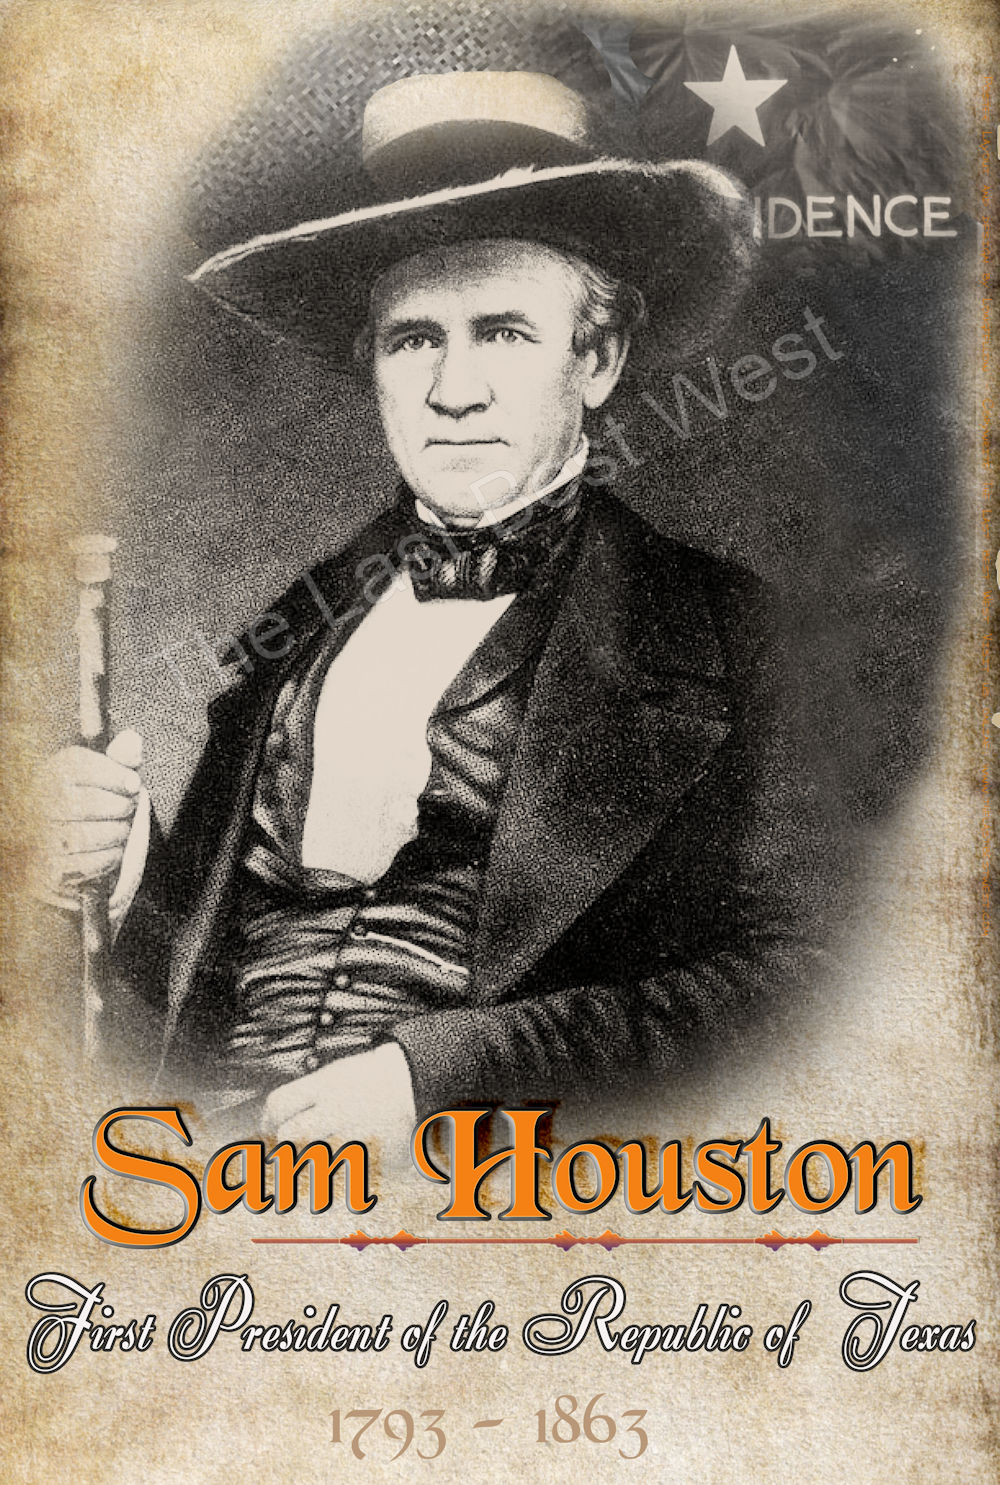 sam houston and the american southwest essay The first half of the nineteenth century was a time of emergence, change, and uncertainty in the american southwest randolph b campbell celebrates this historical time period in his novel, sam houston and the american southwest, as well as the life and times of the southwest's hero himself, sam houston.